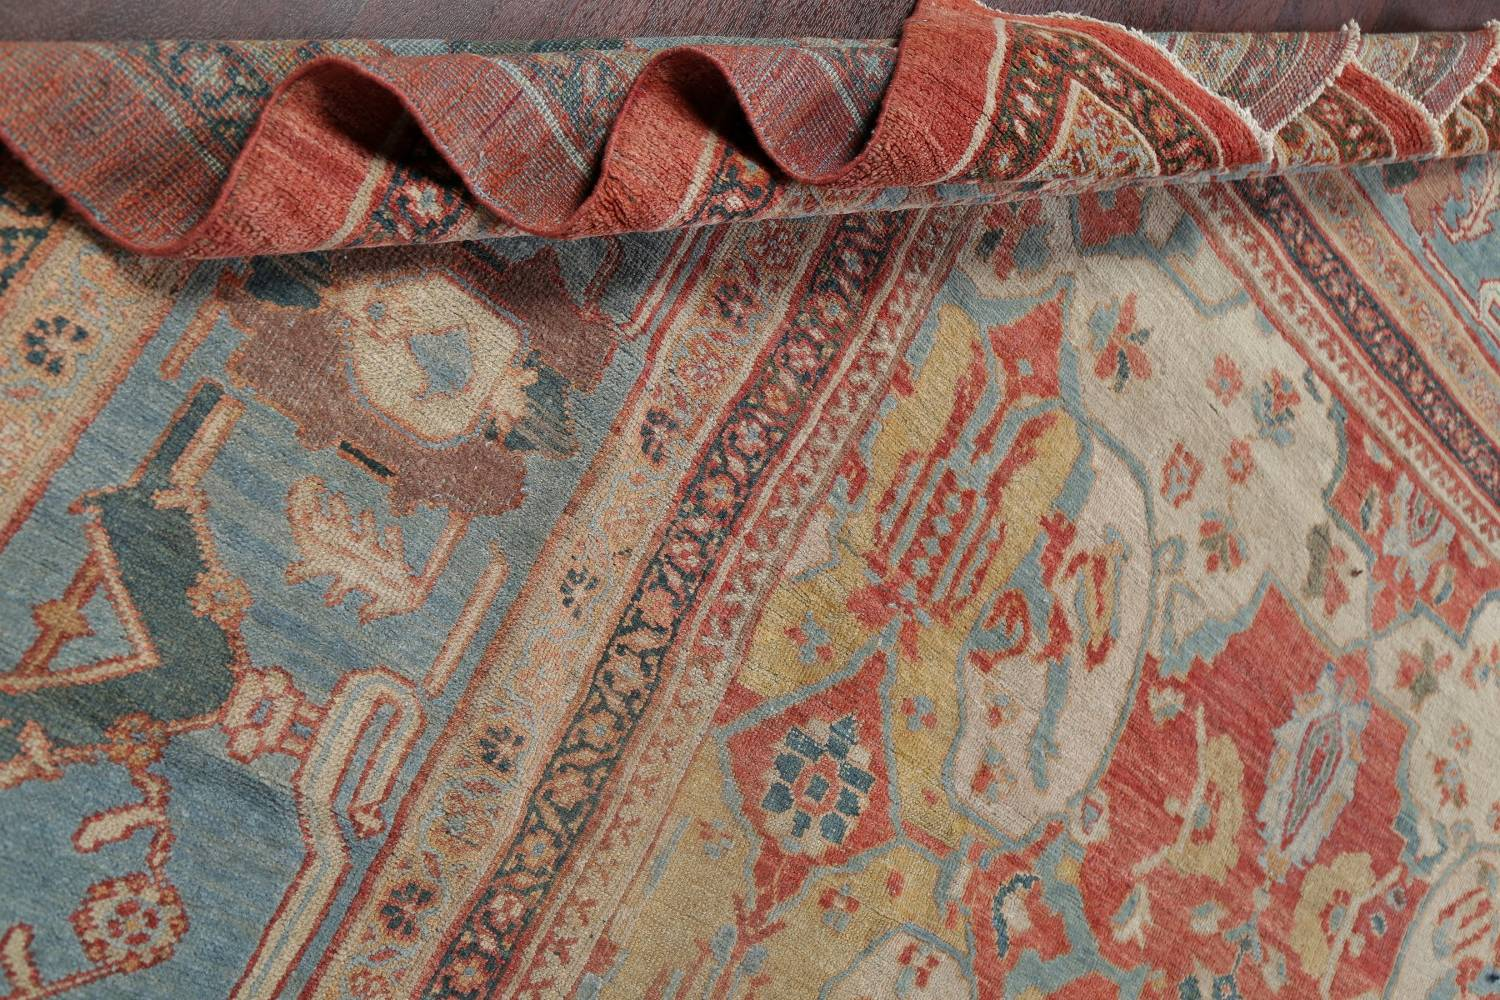 Palace Size Pre-1900 Antique Sultanabad Persian Rug 14x24 image 19